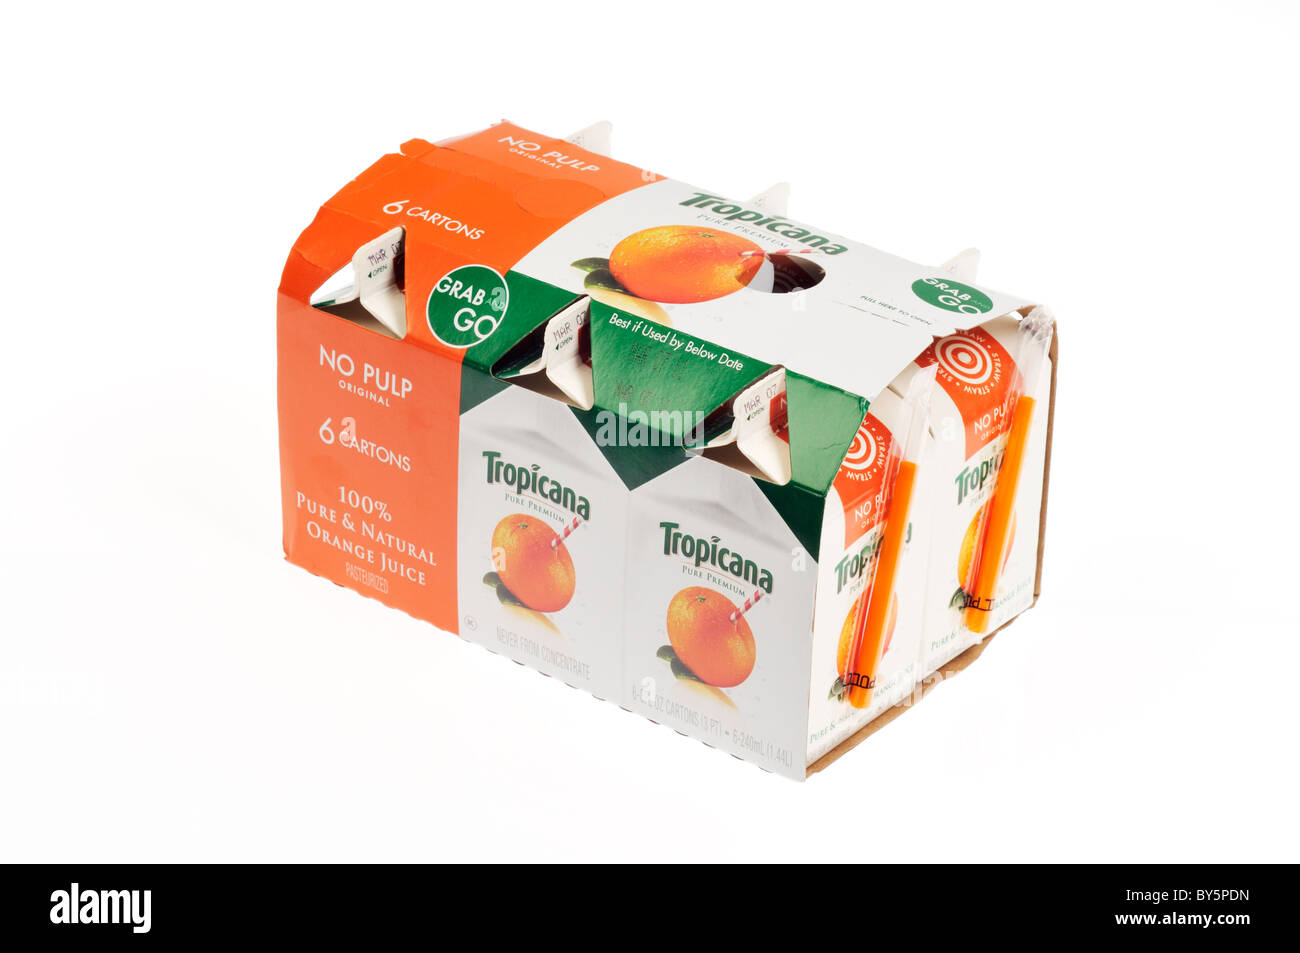 A 6 pack of small cartons of tropicana orange juice on white background, cutout. Stock Photo